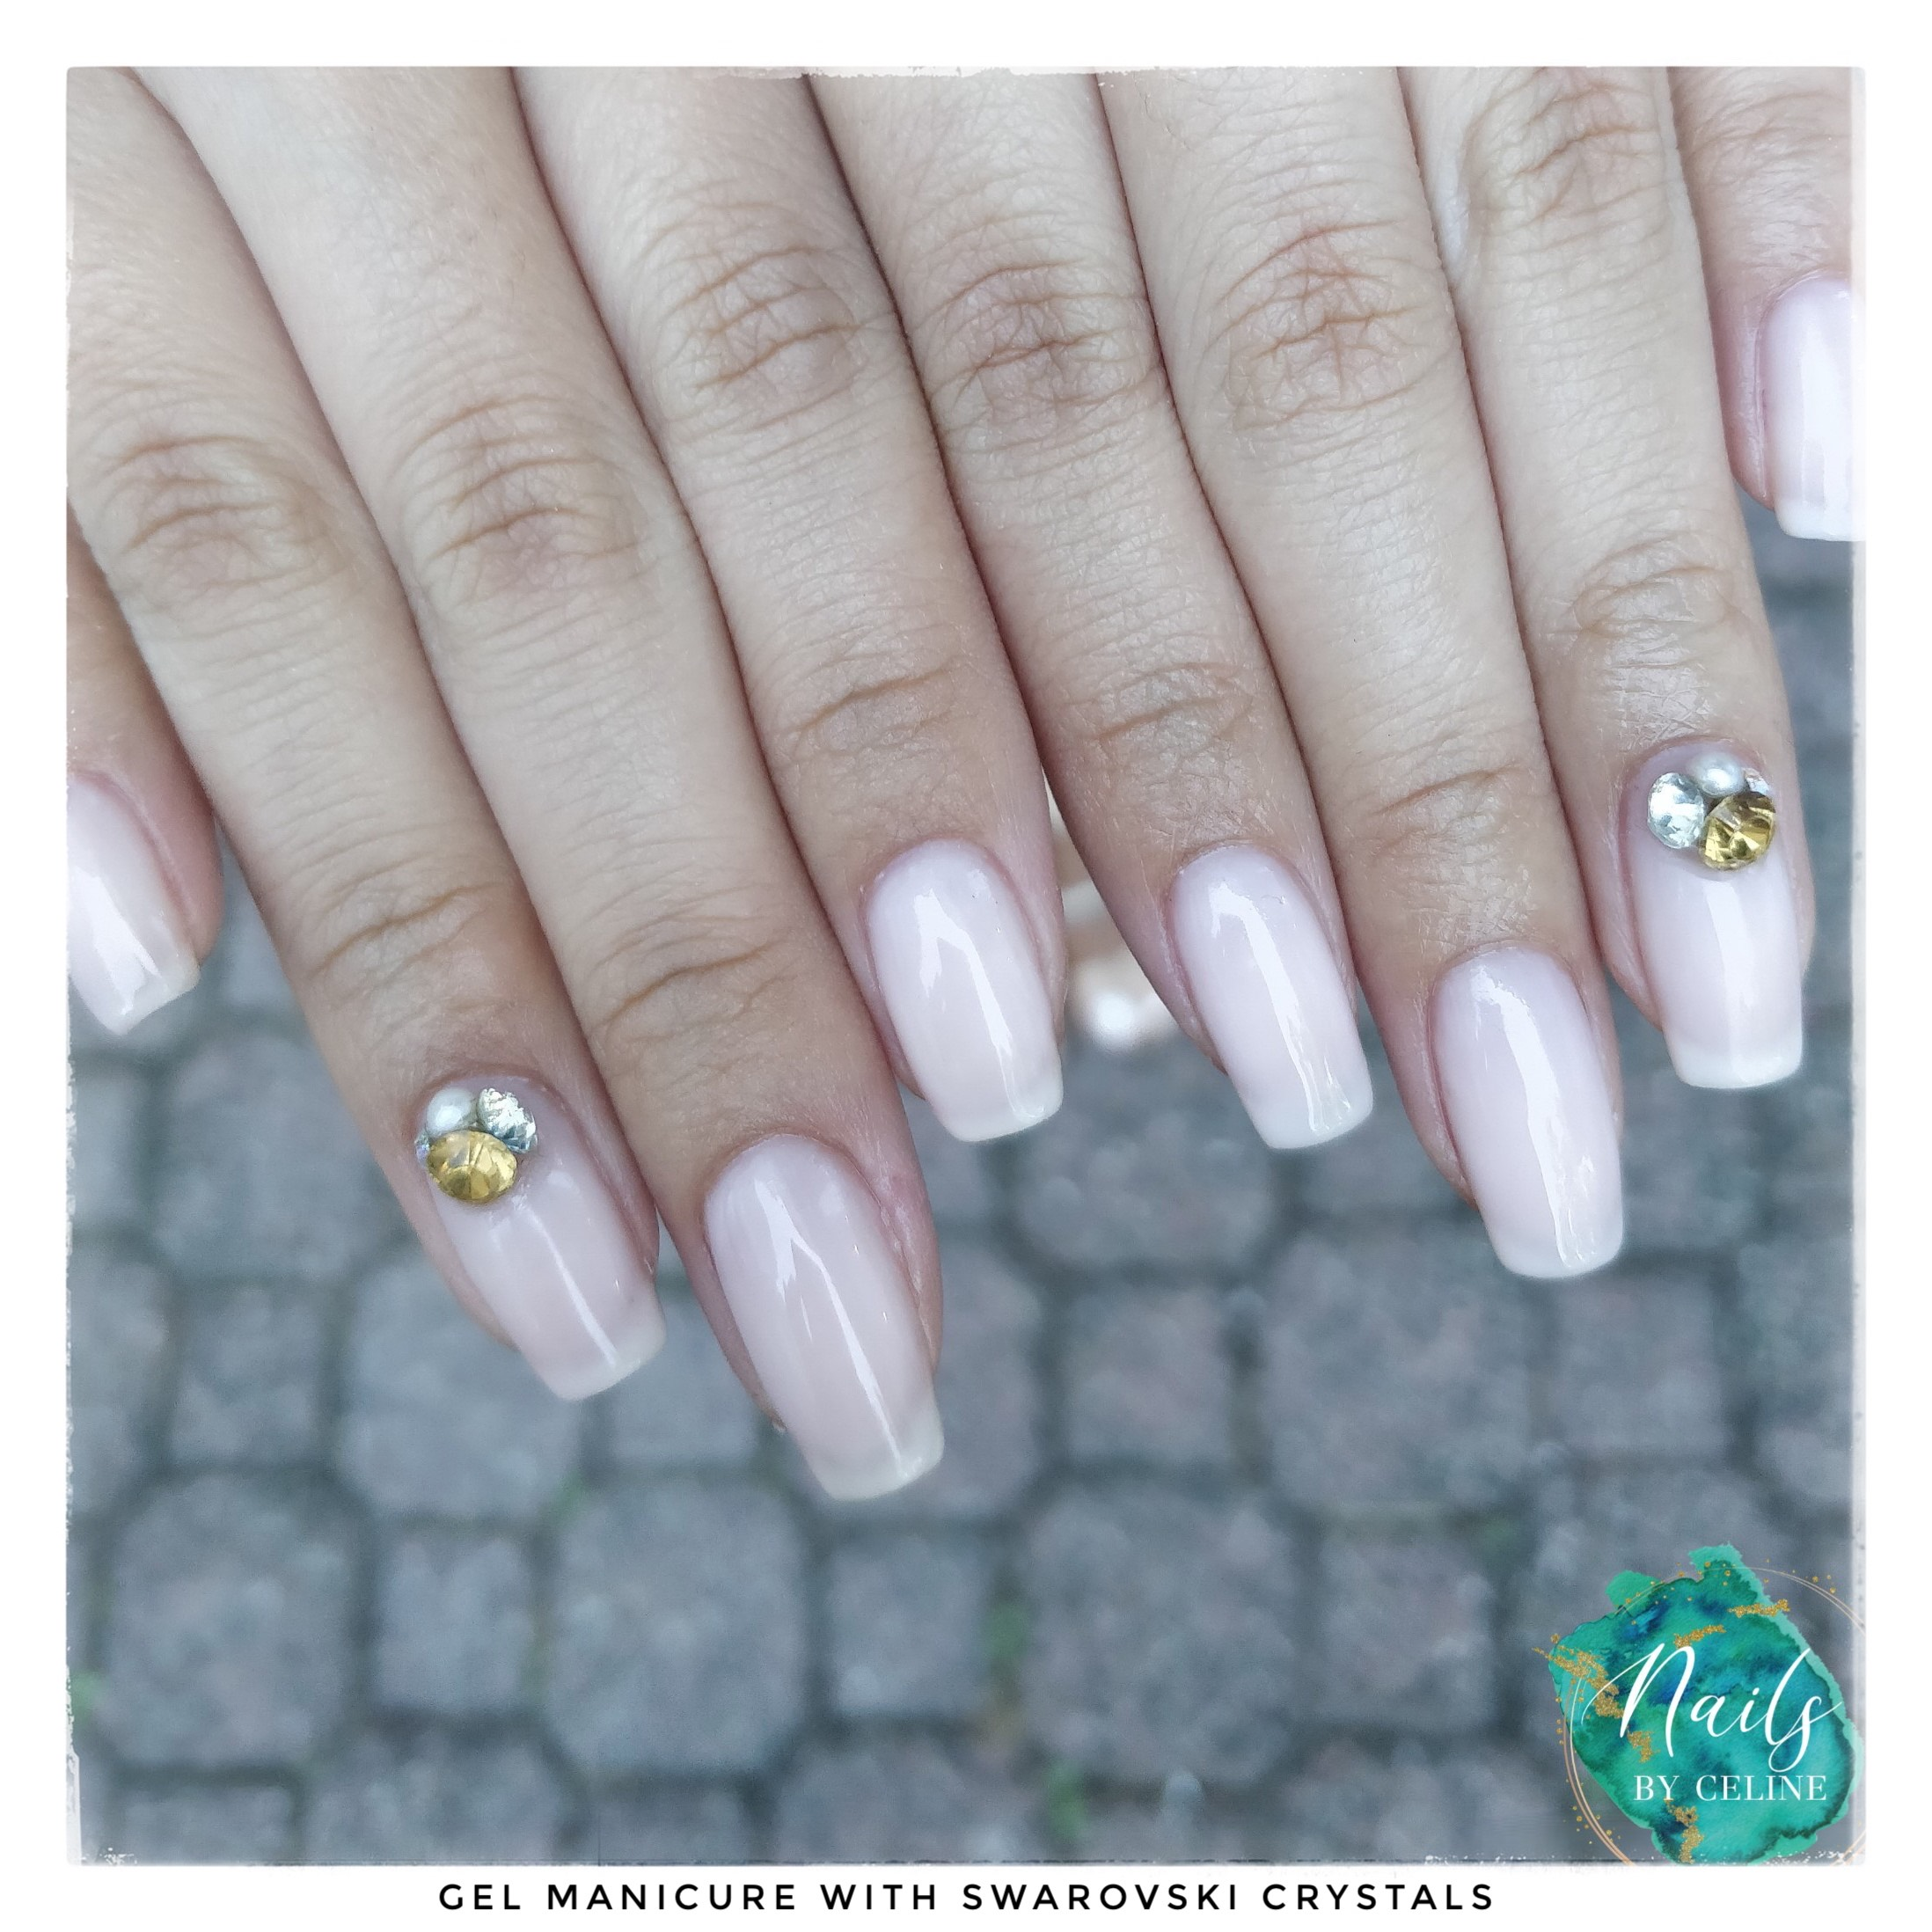 gel manicure with swarovski crystals